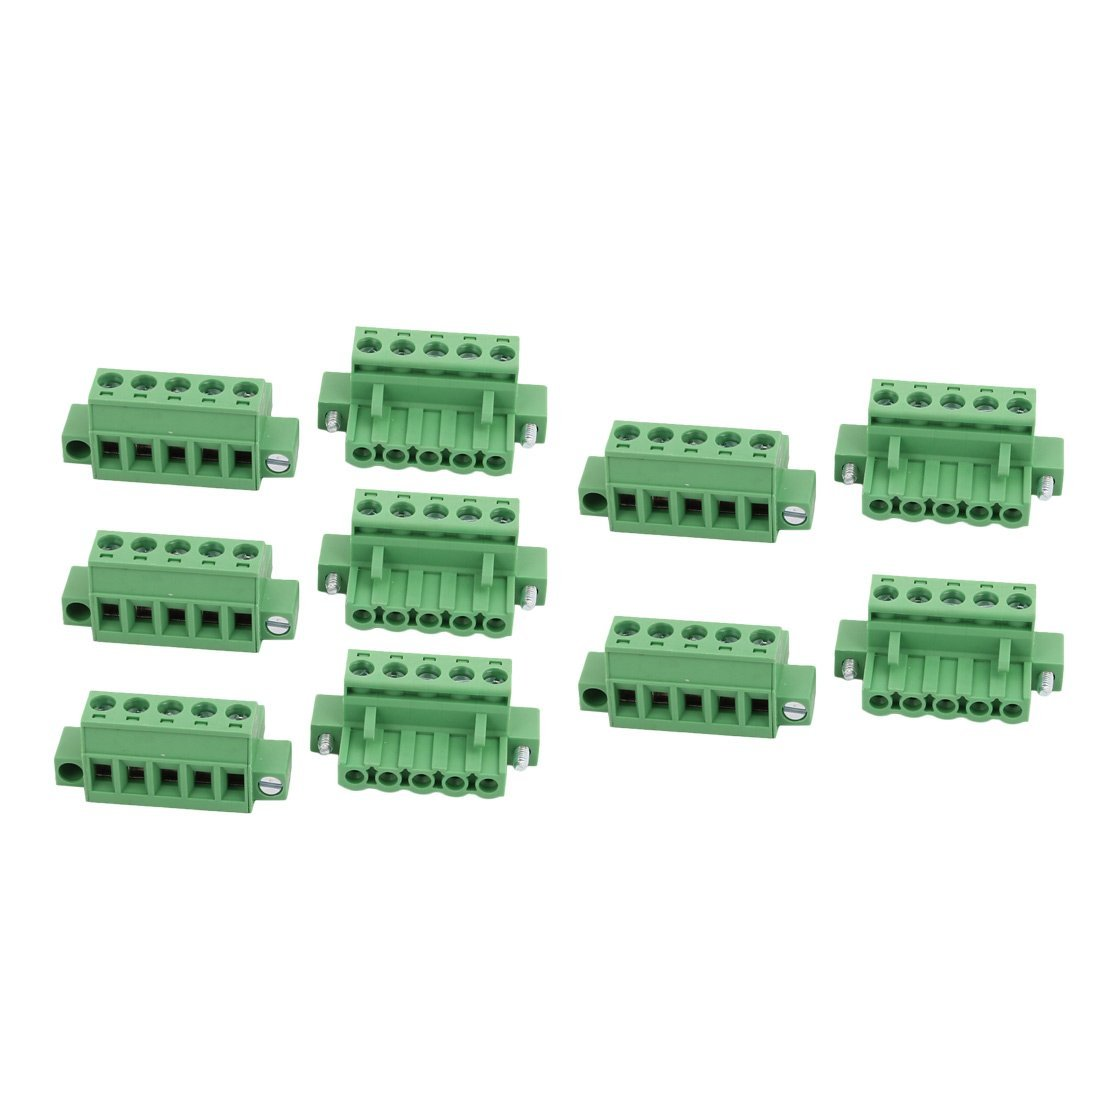 uxcell 10Pcs AC 300V 15A 5.08mm Pitch 5P PCB Terminal Block Wire Connection